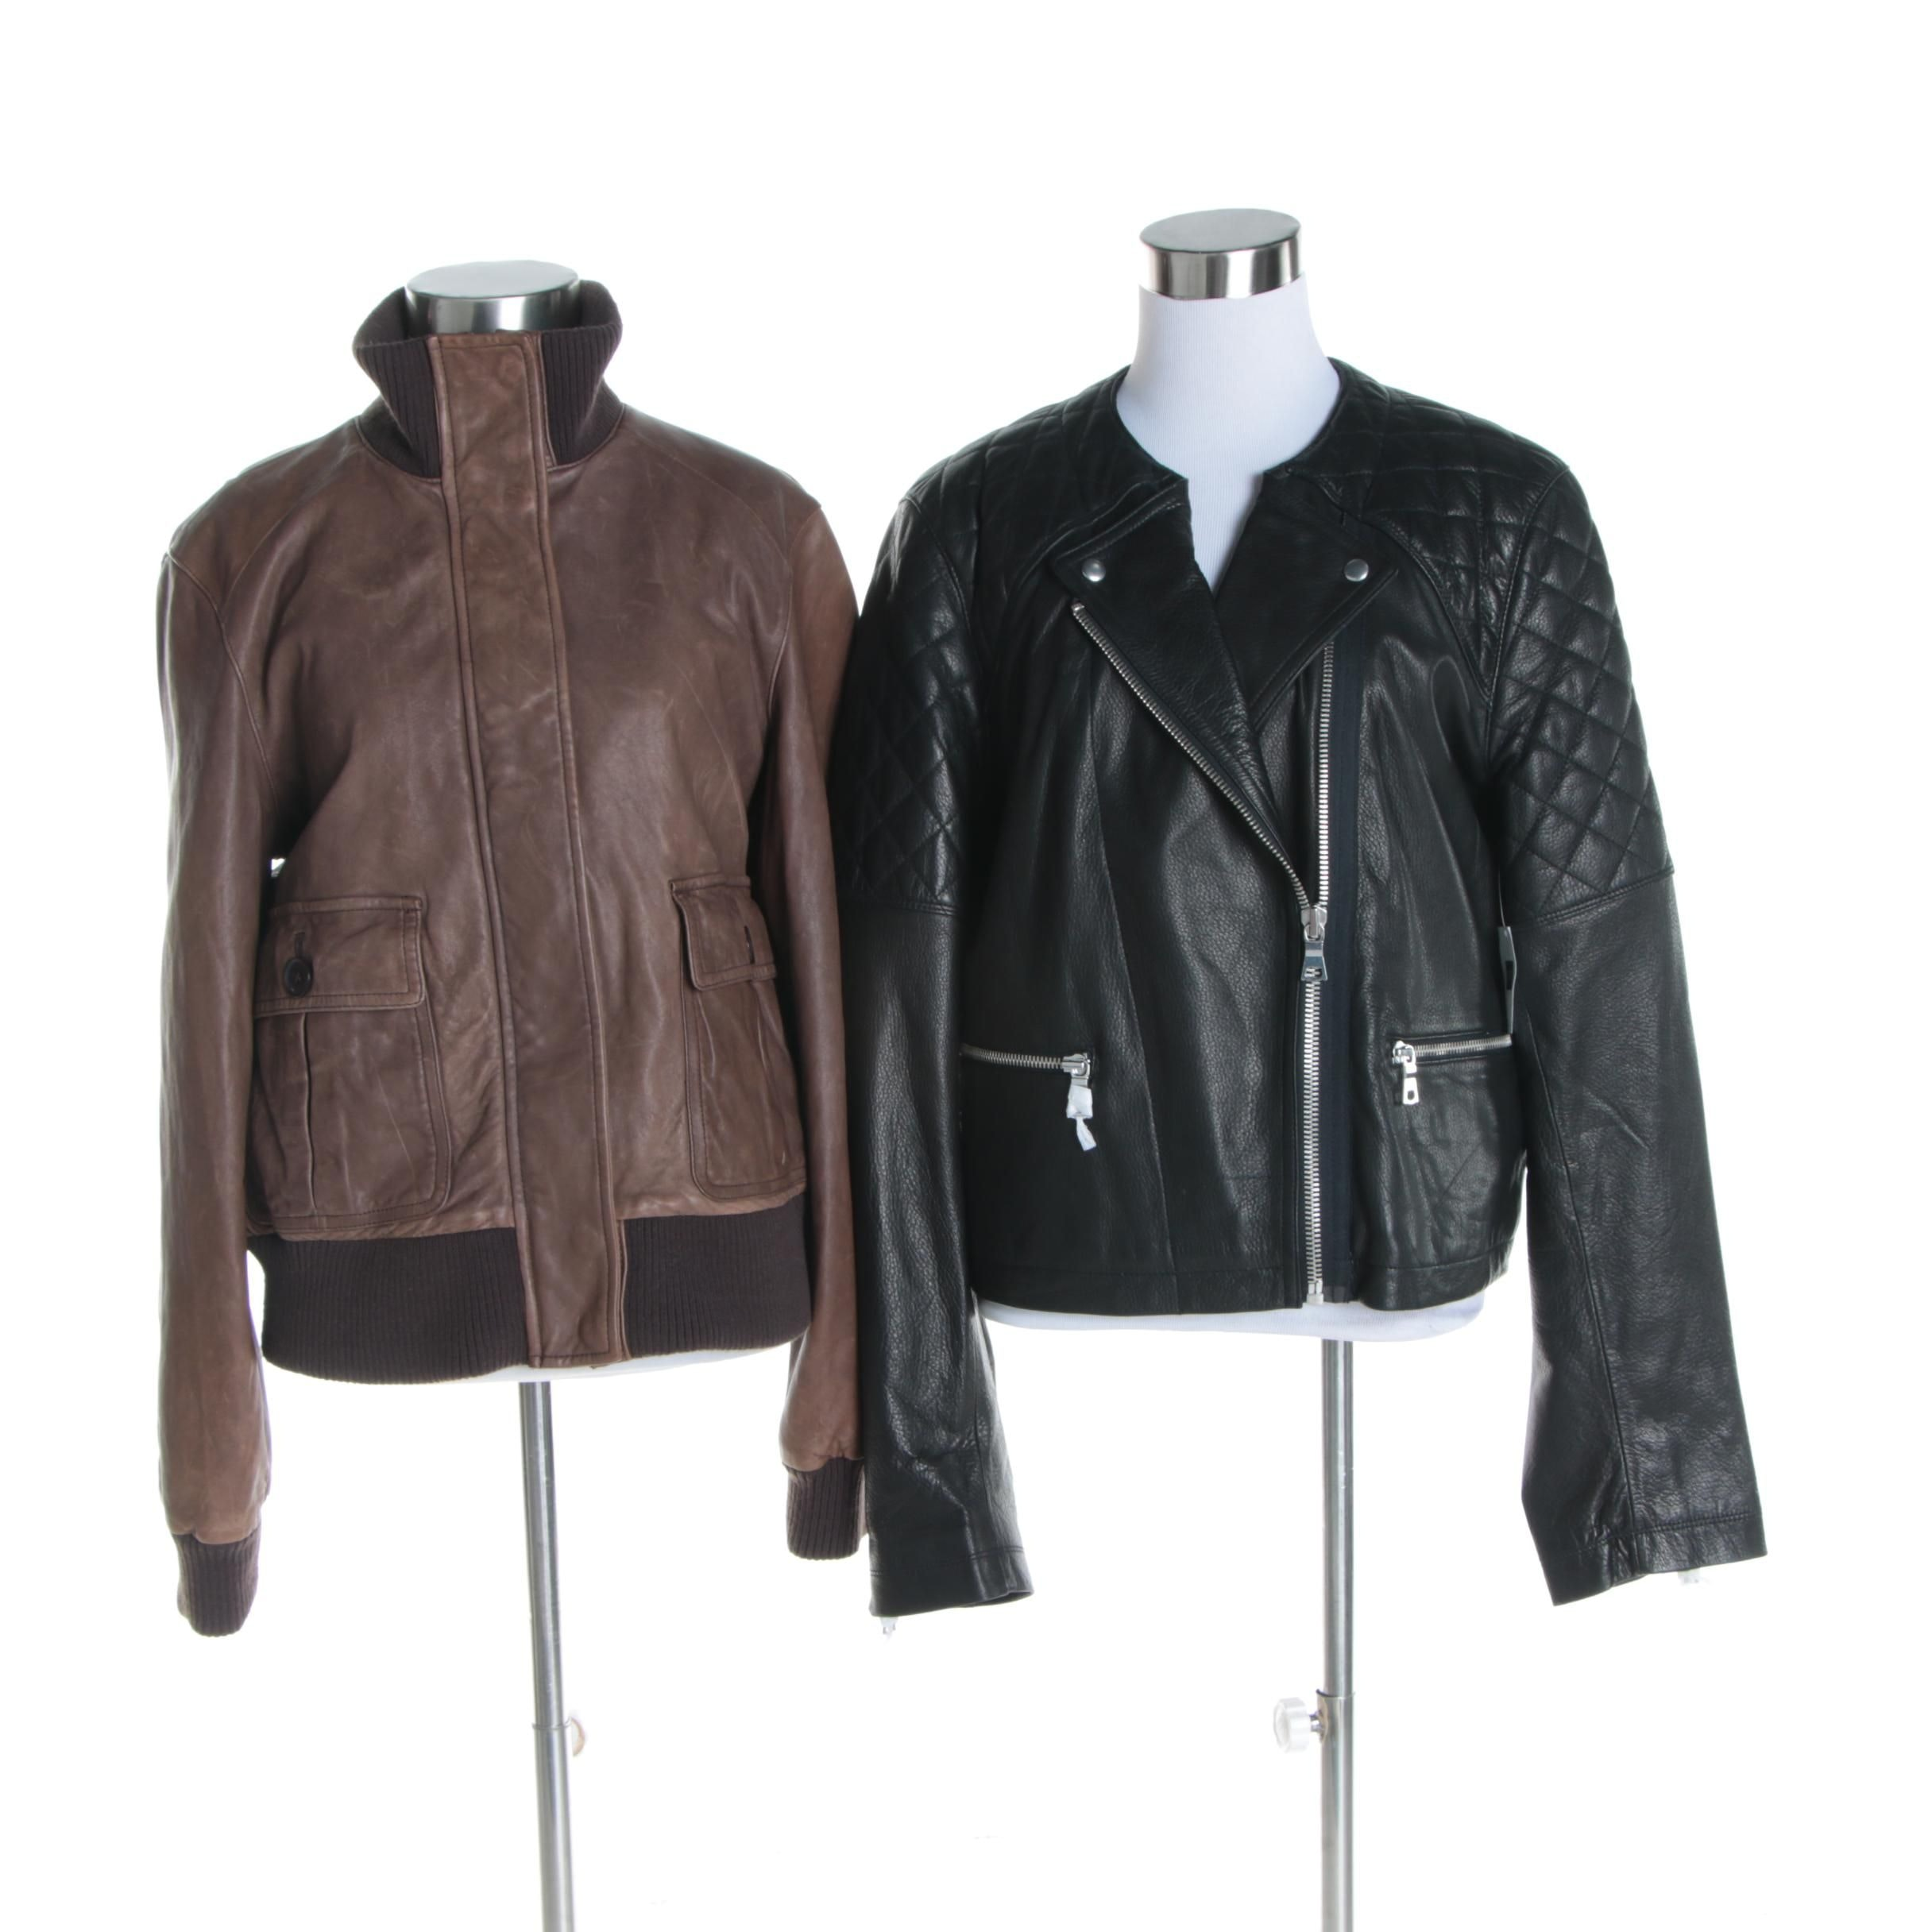 Women's Gap Leather Bomber and Motorcycle Jackets